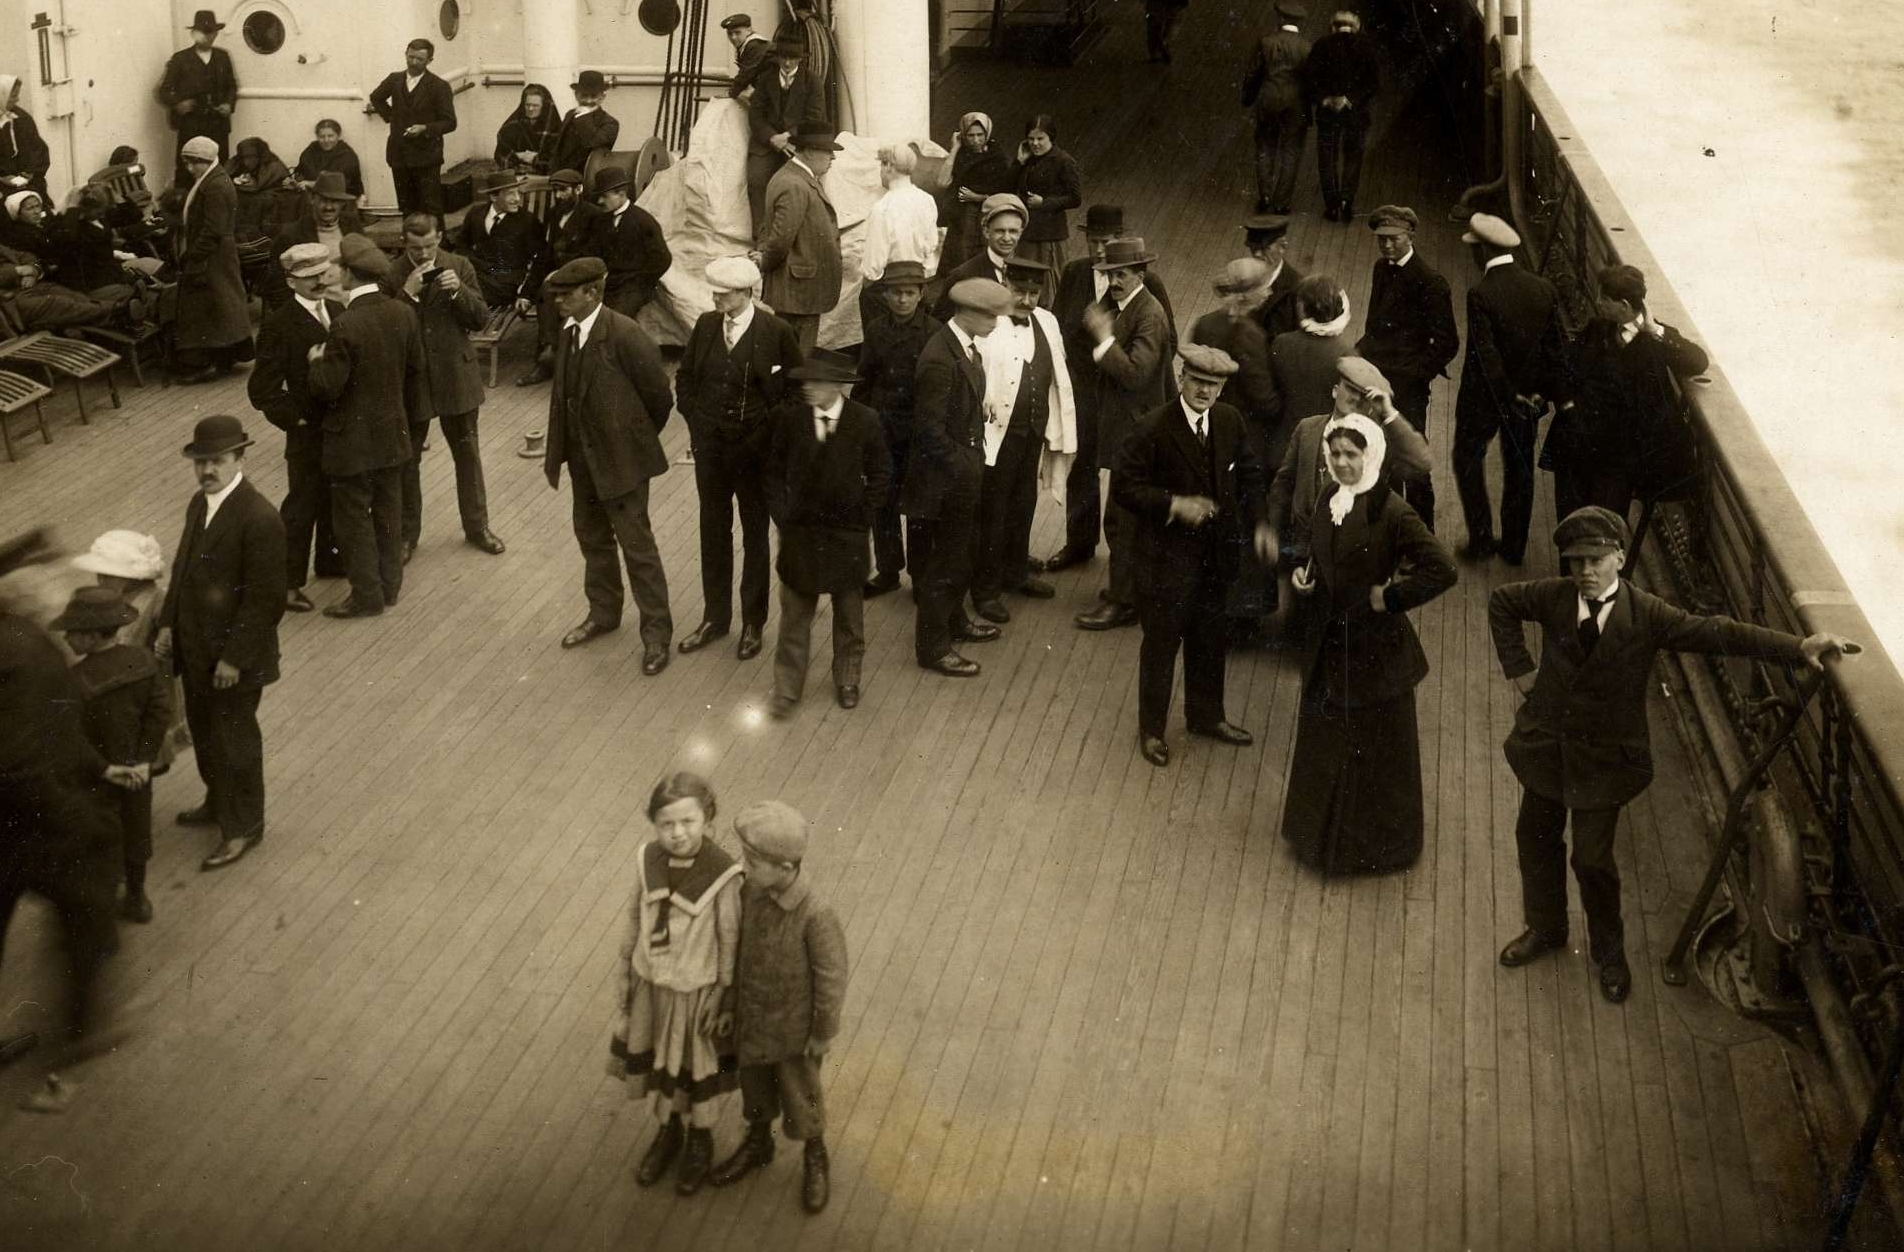 Ship Deck that was Similar to the Titanic